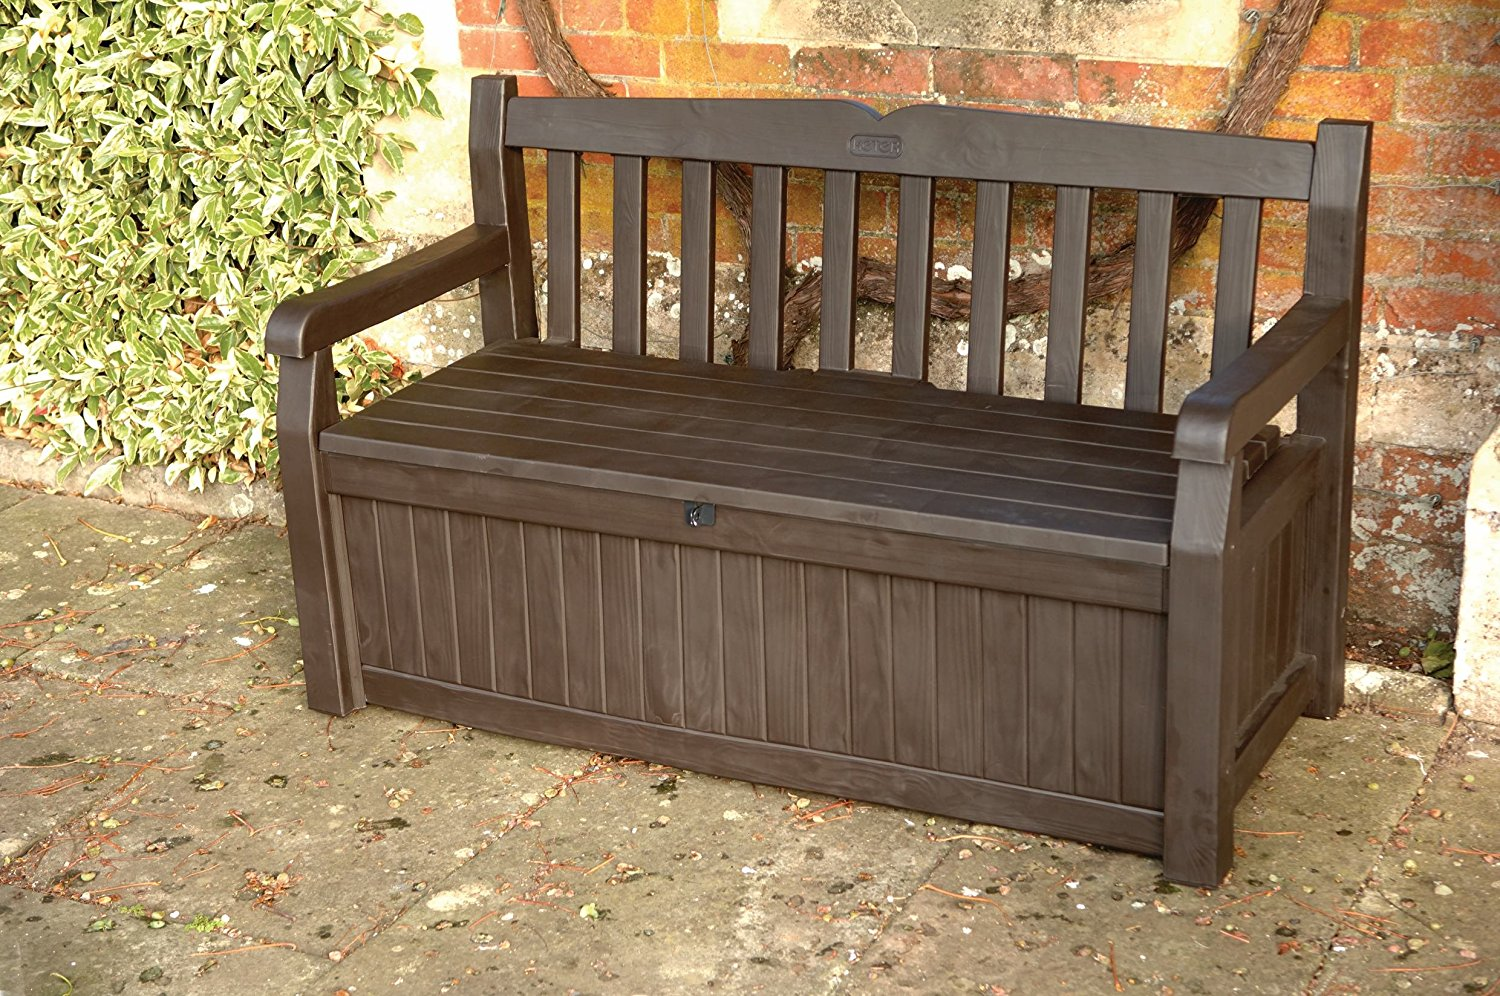 Picture of: Wooden Bench with Storage Arms